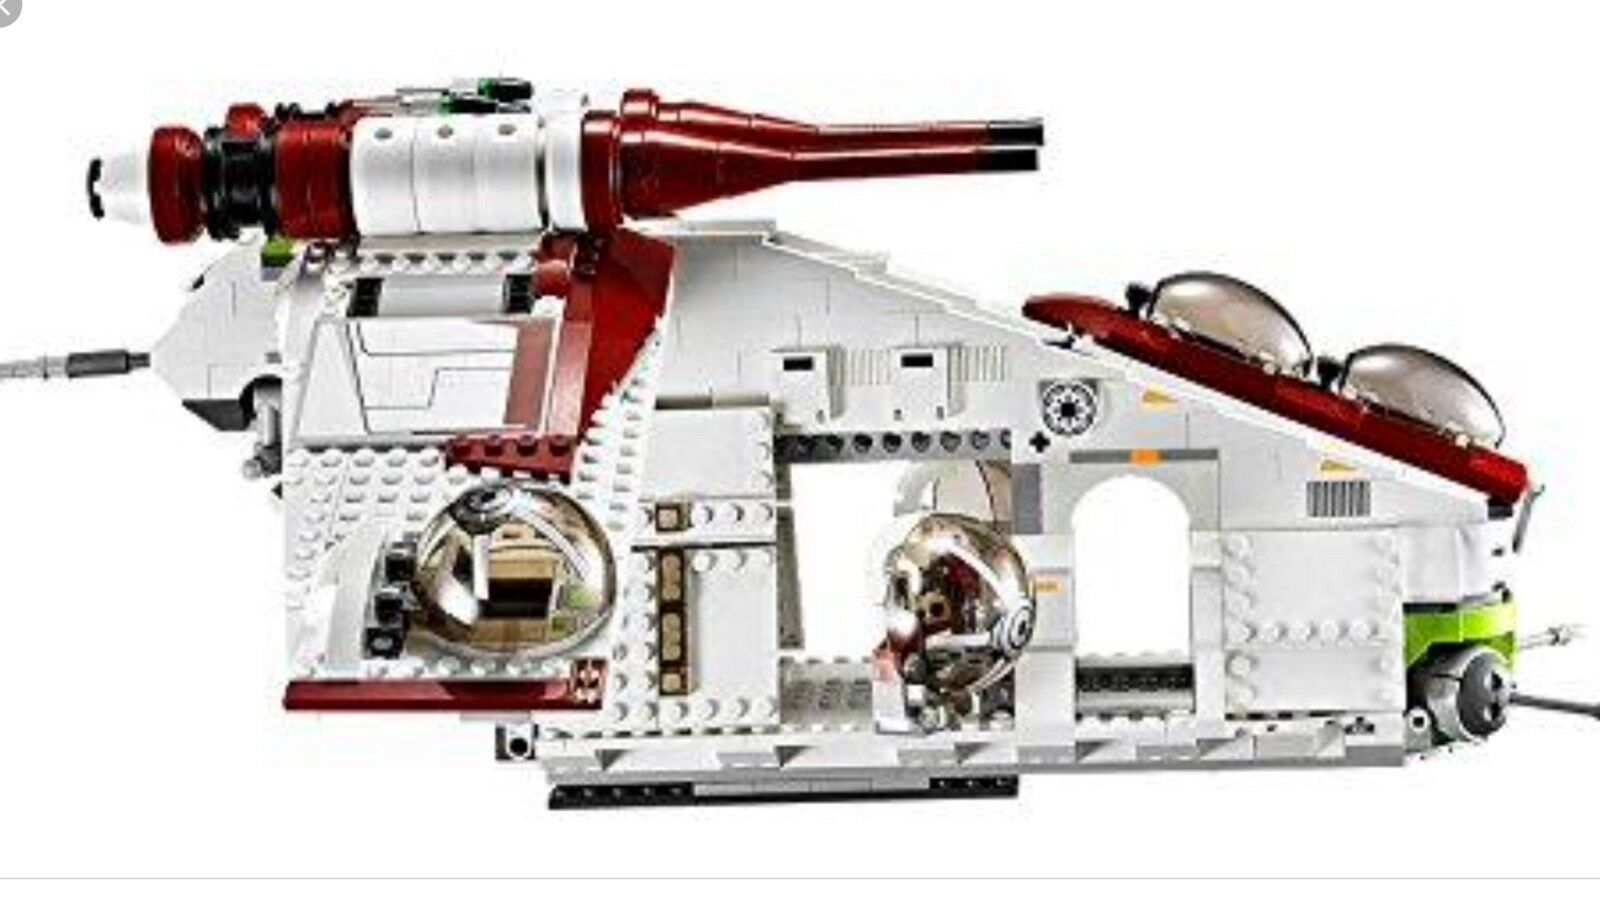 Star Wars Lego REPUBLIC GUNSHIP from set 75021 SET ONLY NO MINIFIGURES OR BOX